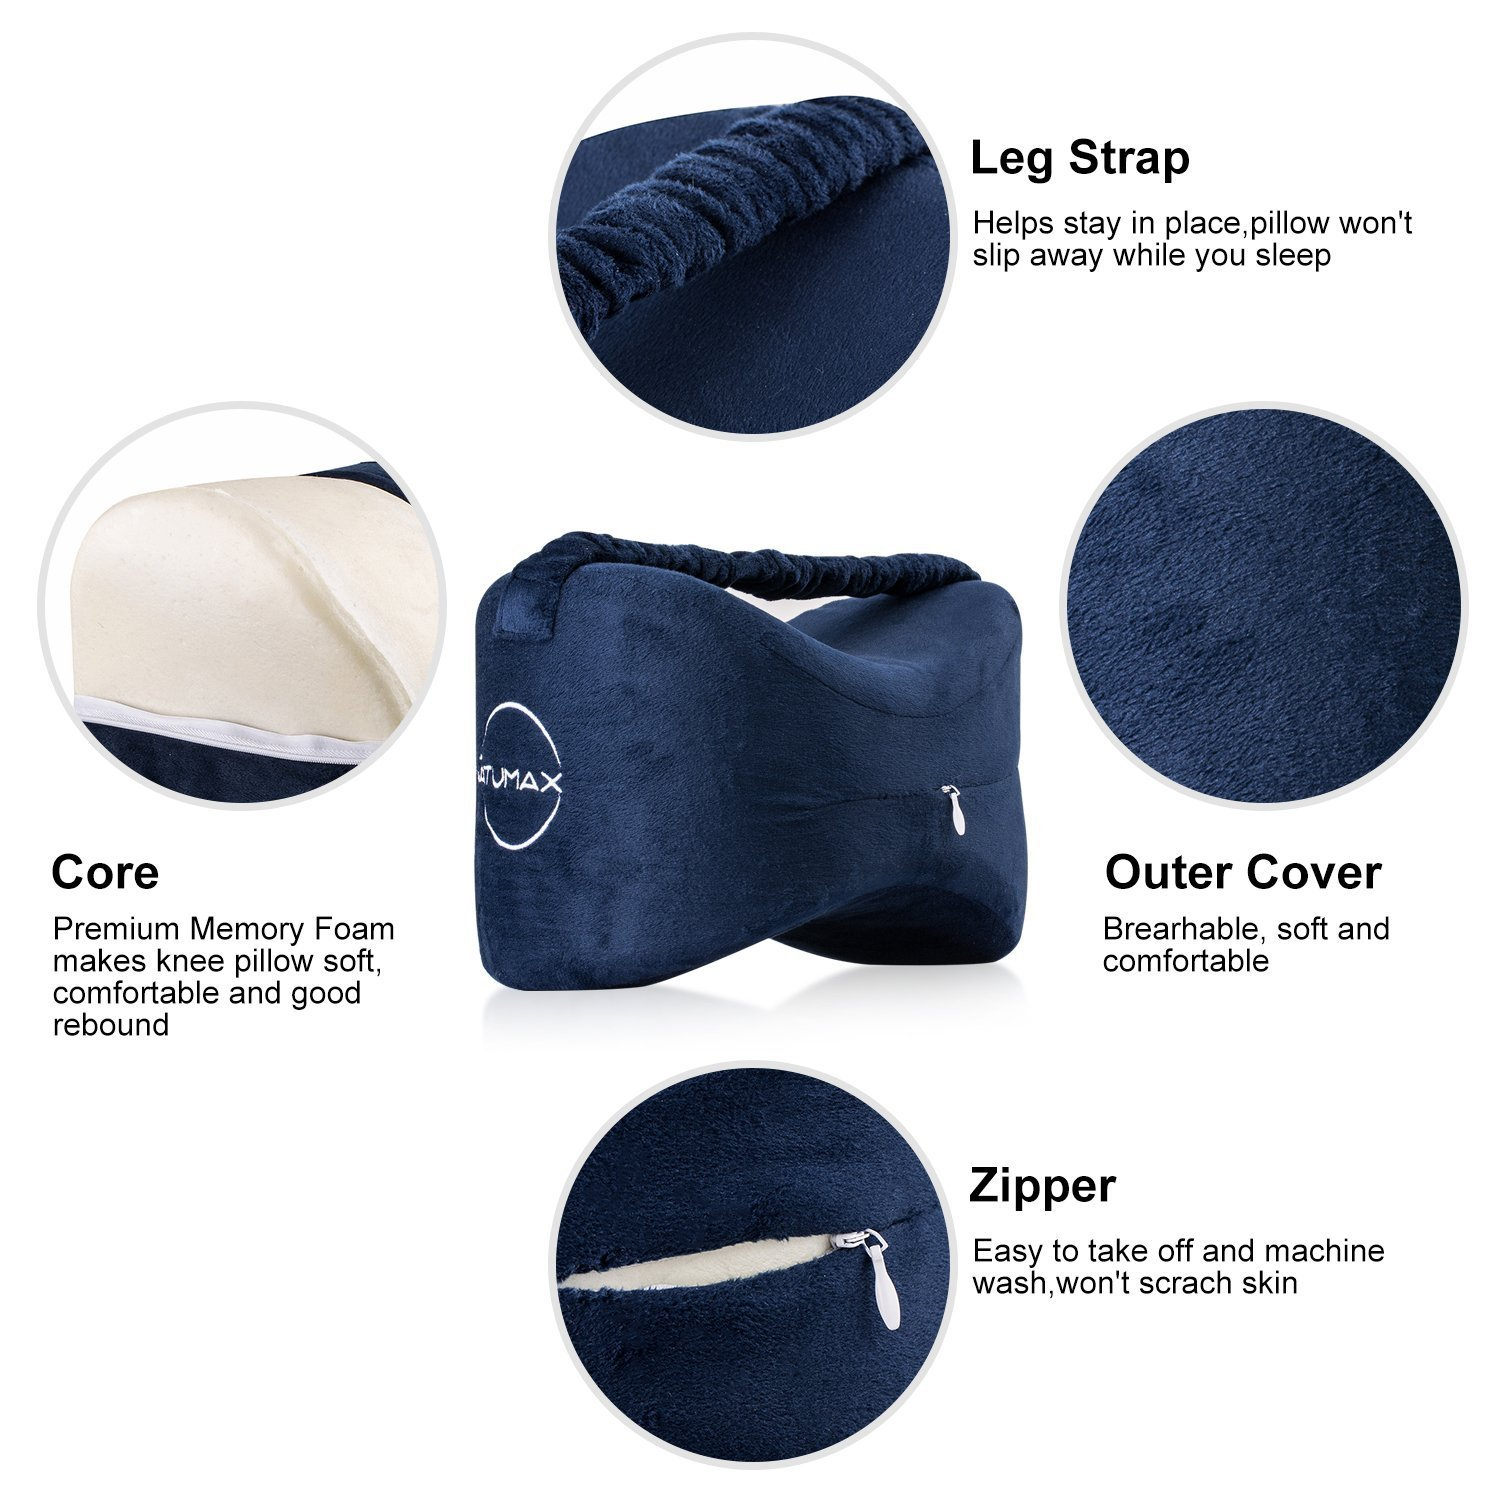 NATUMAX Knee Pillow for Side Sleepers - Sciatica Pain Relief - Back Pain, Leg Pain, Pregnancy, Hip and Joint Pain Memory Foam Leg Pillow with Washable Cover + Free Sleep Mask and Ear Plugs by NATUMAX (Image #4)